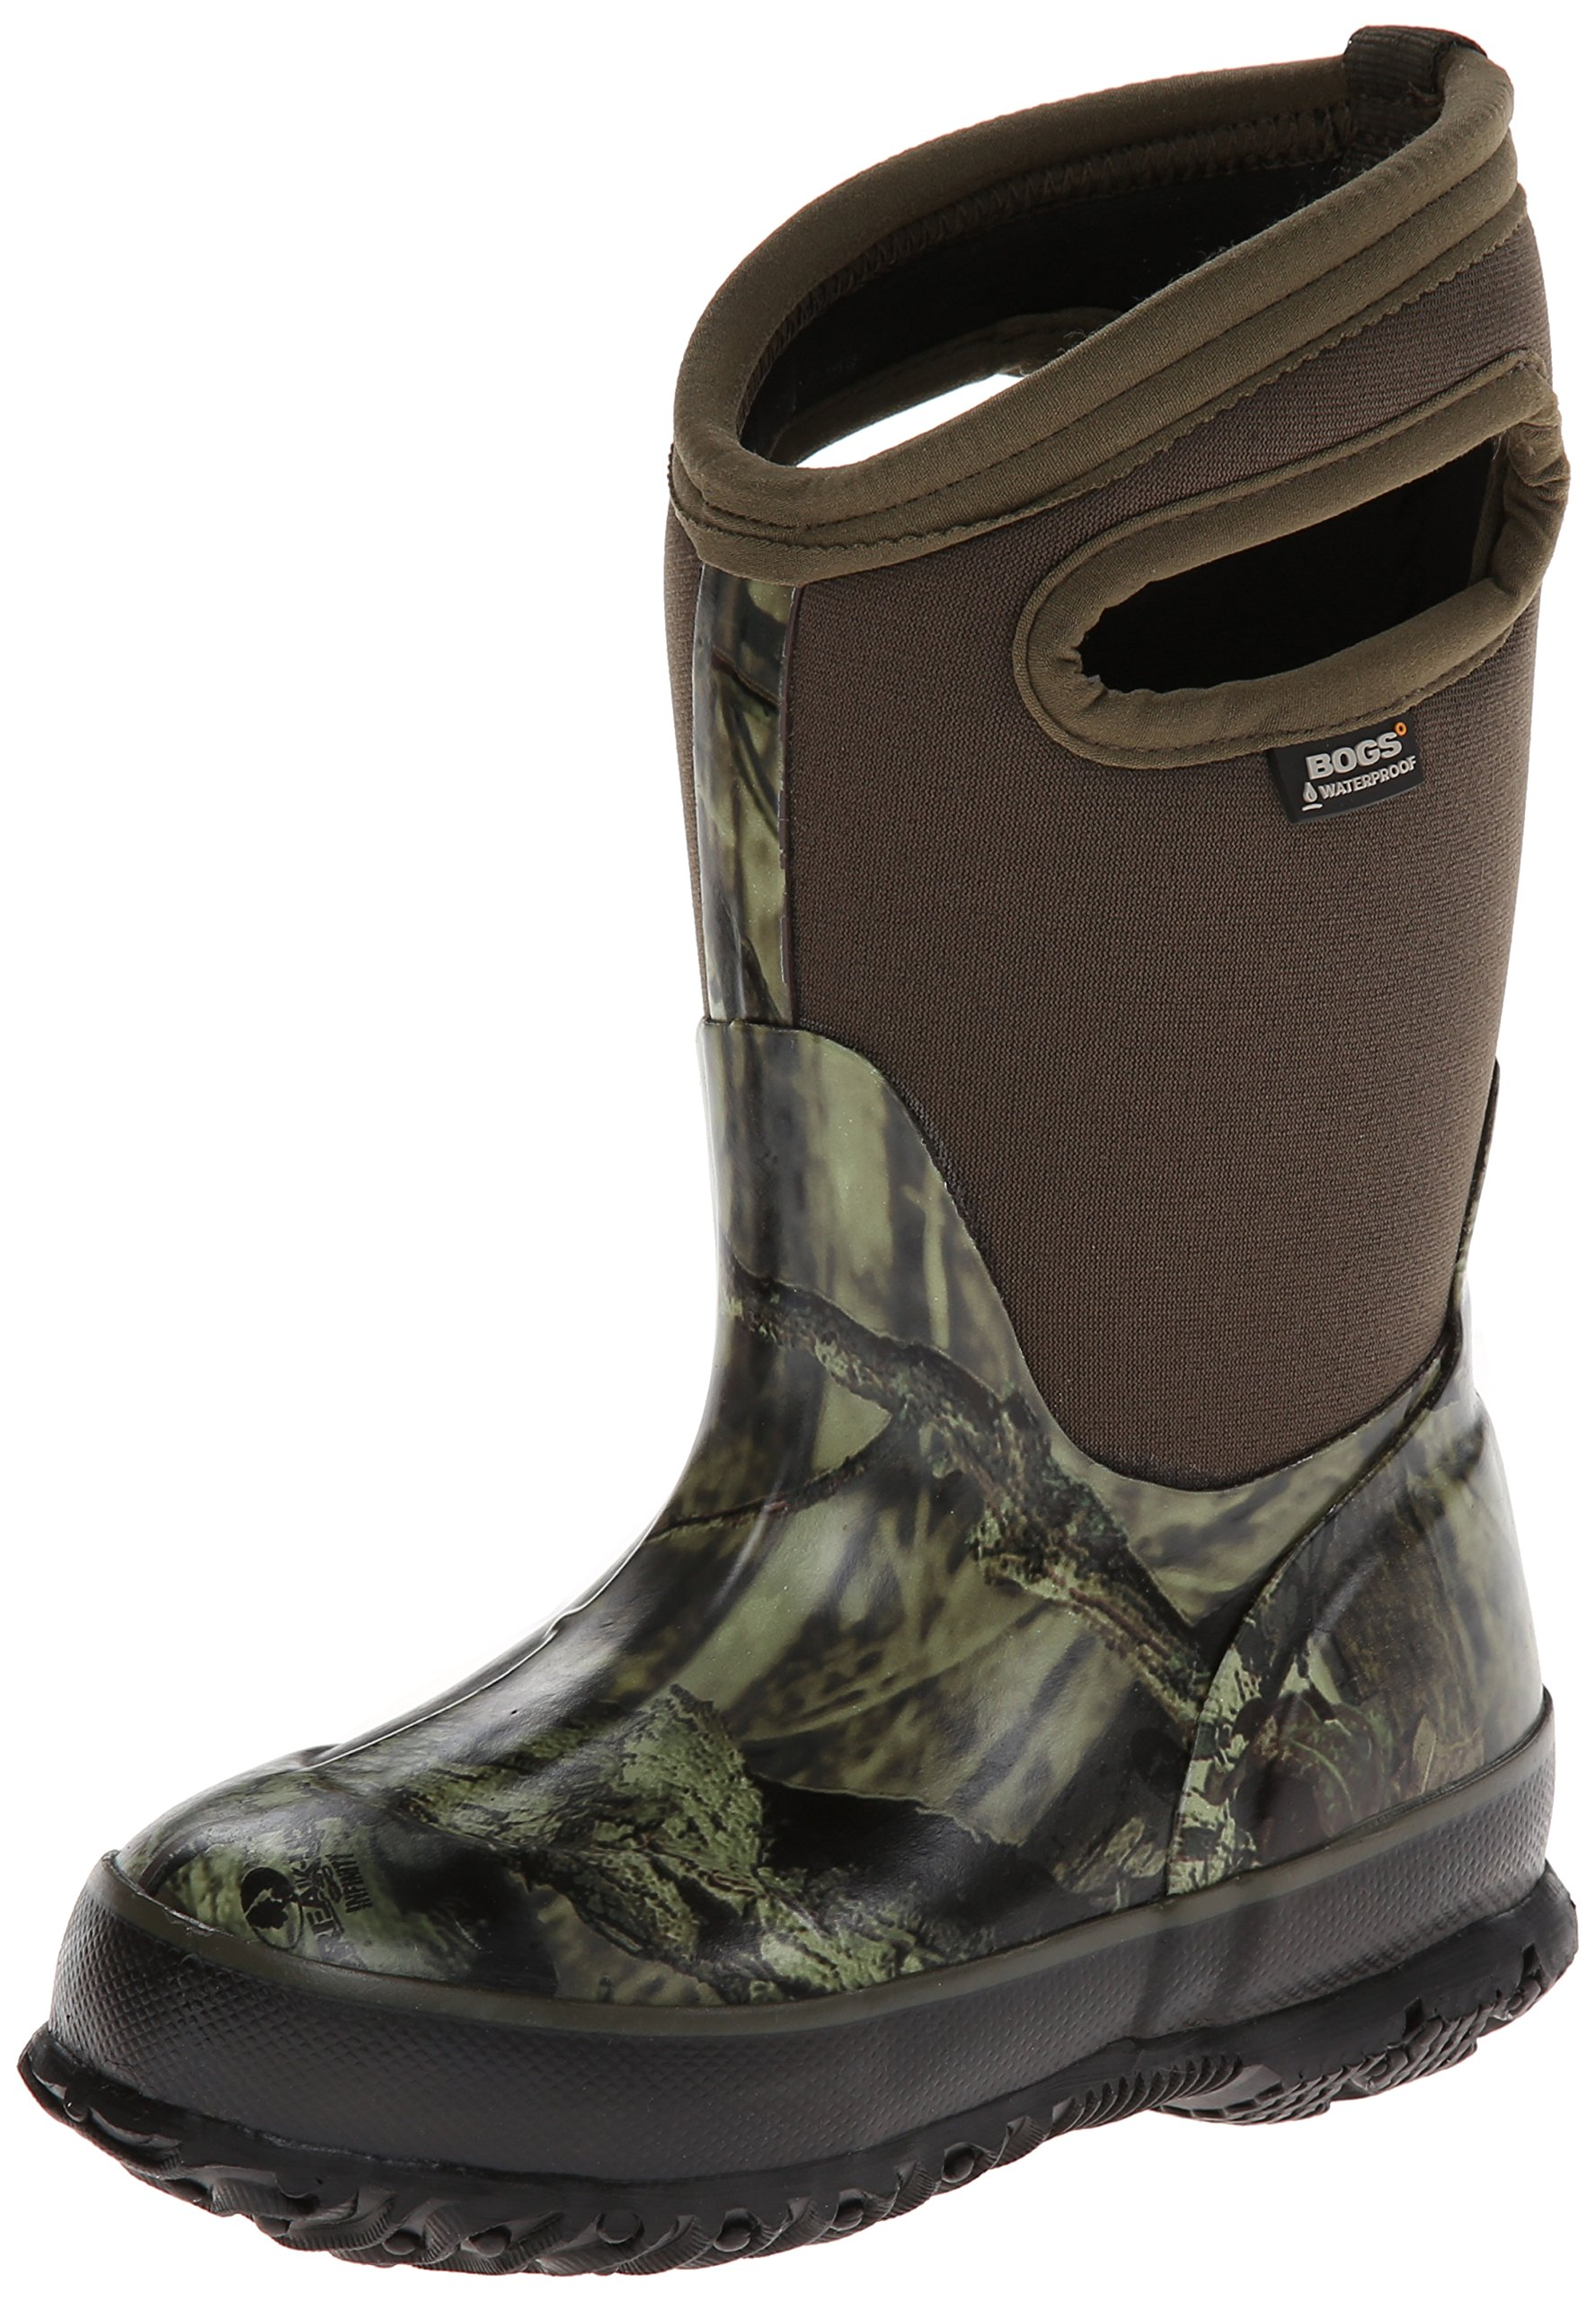 Bogs Classic High Waterproof Insulated Rubber Neoprene Rain Boot Snow, Camo Mossy Oak/Green/Multi 12 M US Little Kid